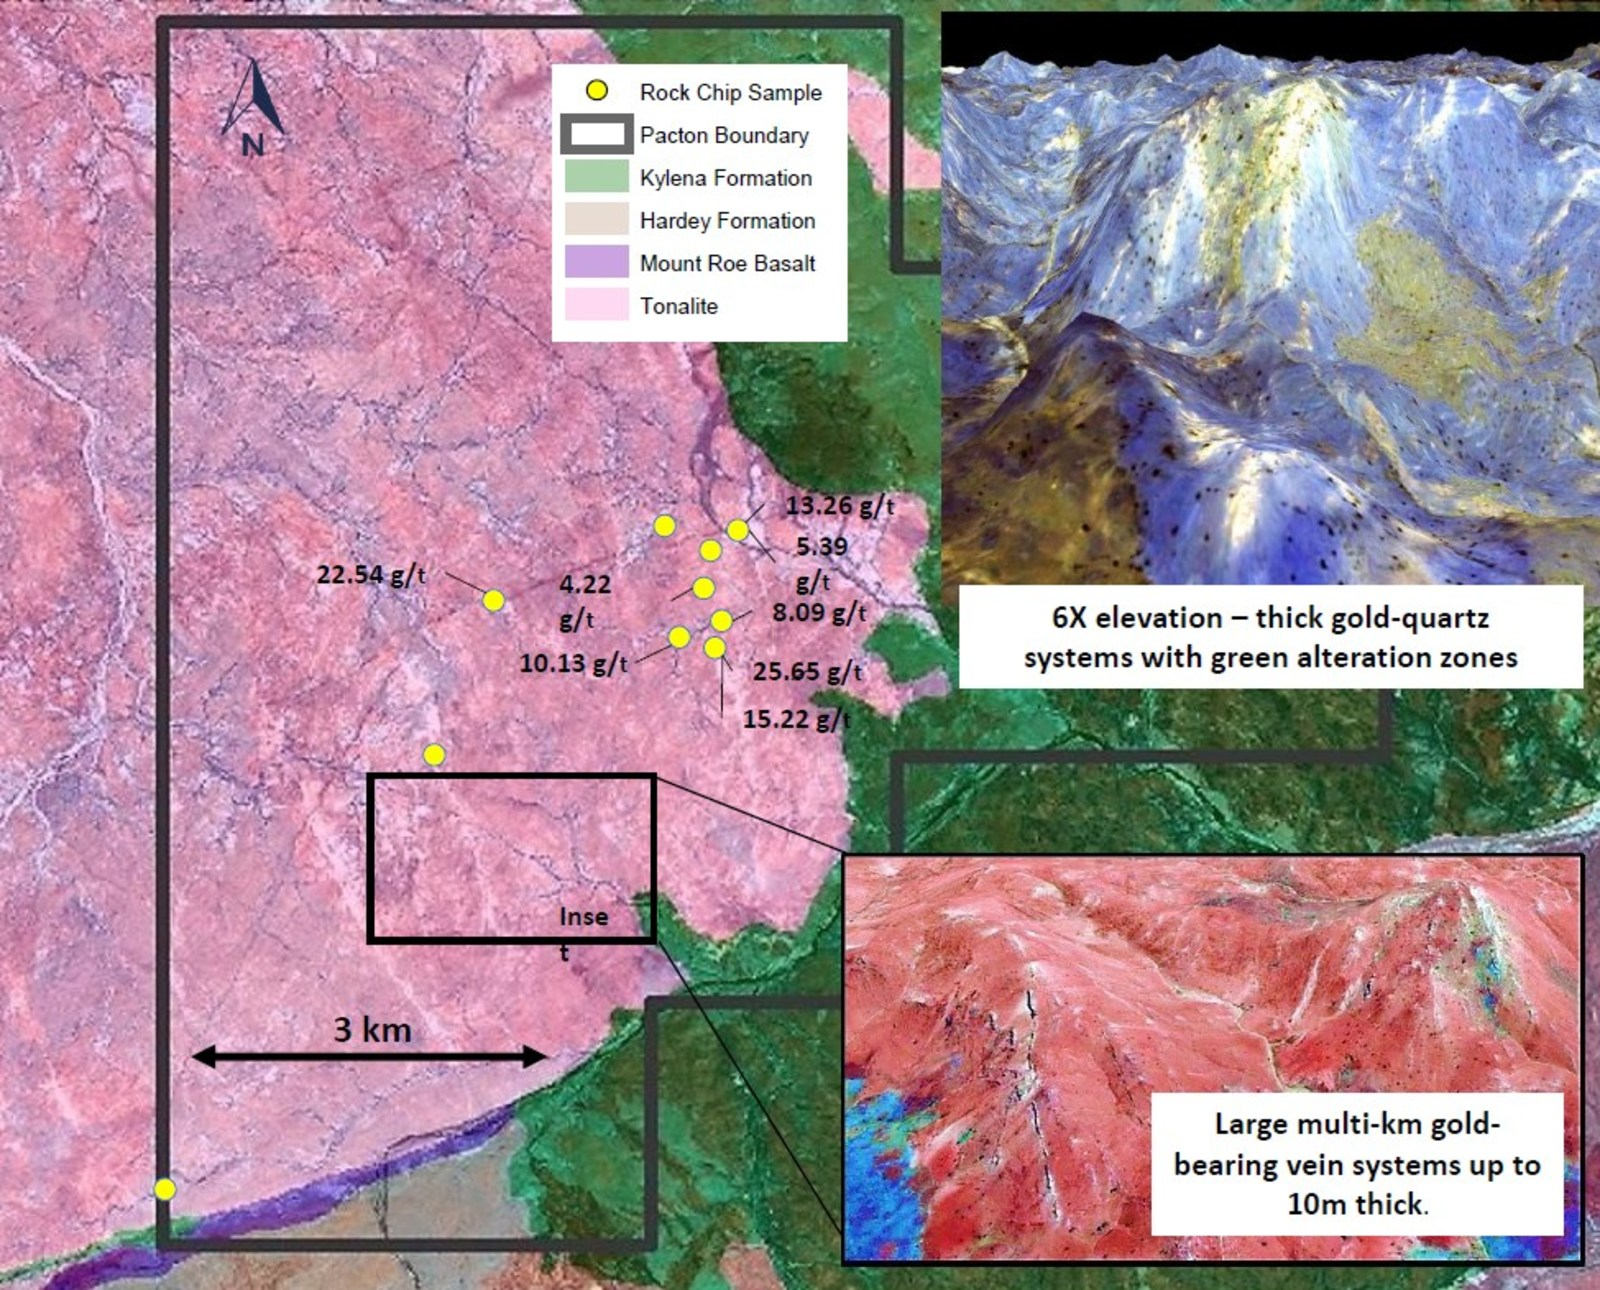 Figure 2. Fortescue Group Kylena and Mount Roe formations overlap the older Archean pink tonalite pluton. The tonalite is intruded by a massive system of gold-bearing quartz veins. The 3D insets show the influence of the resistant quartz veins in controlling the topography. The entire pluton contains obvious, greenish alteration zones that suggest less resistant quartz stockworks.